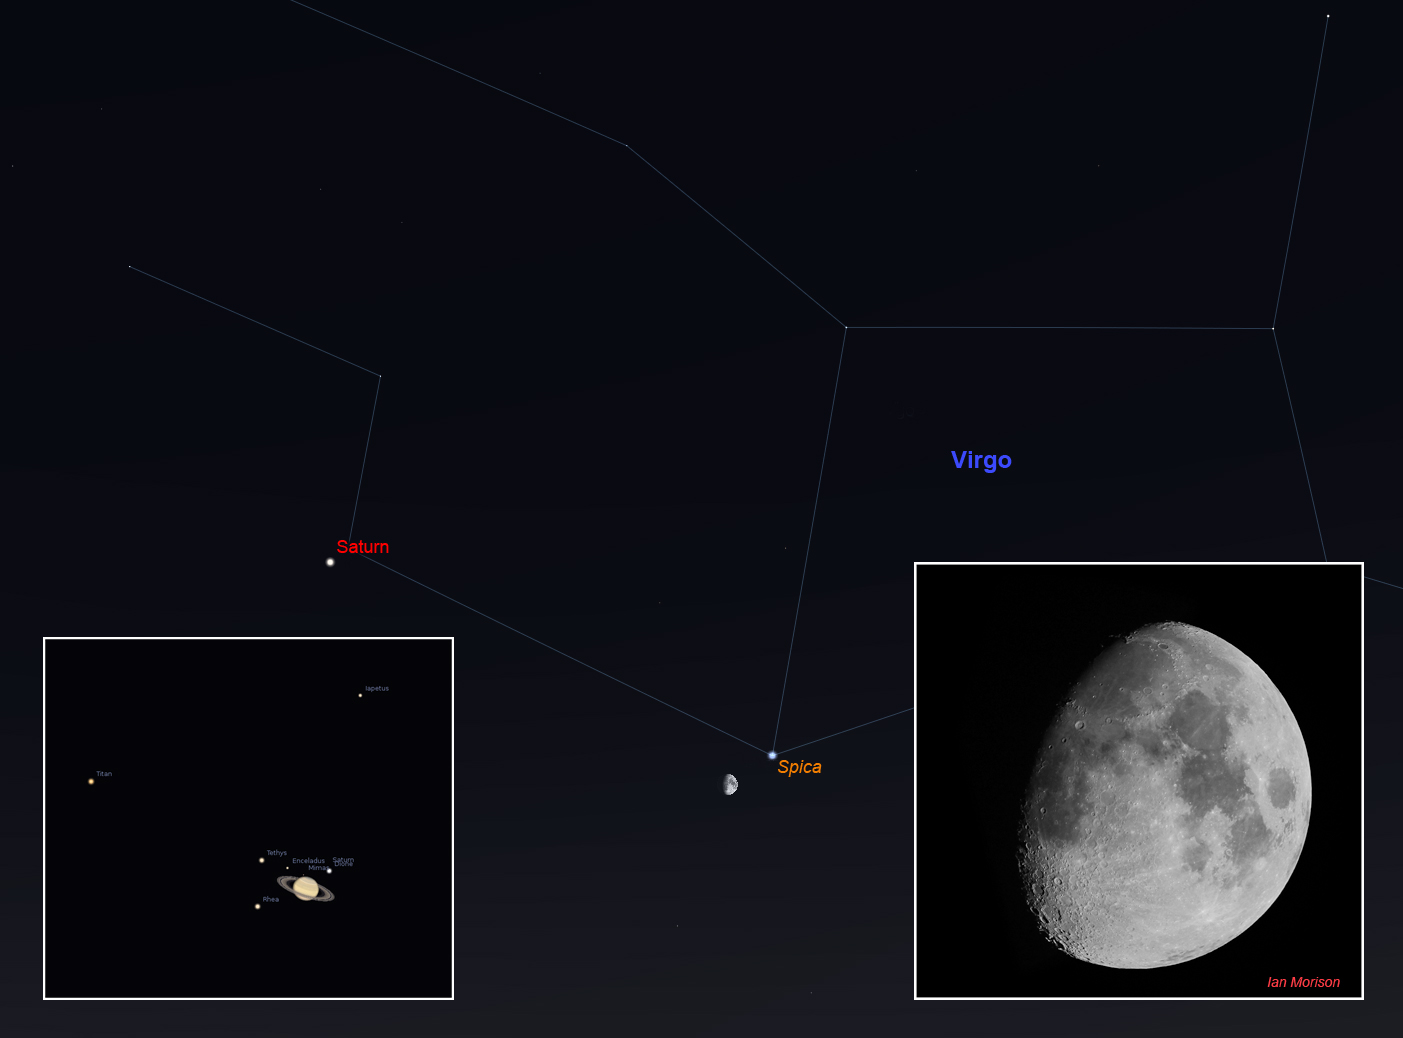 Conjunction between moon and Spica on 18th with Saturn (thanks to Ian Morison of Jodrell Bank Centre for Astrophysics)